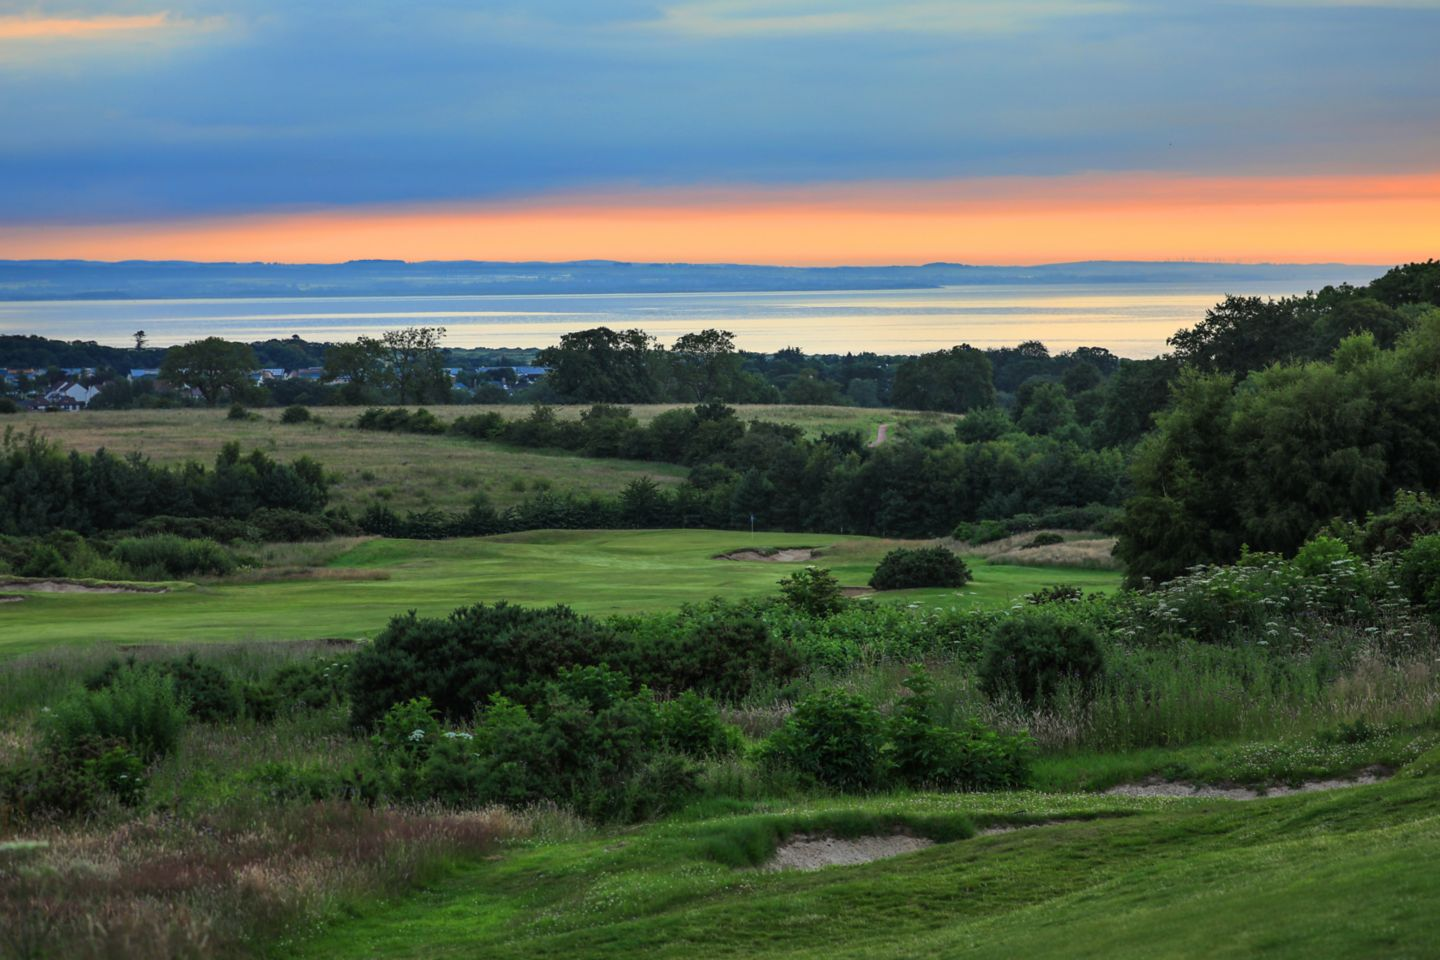 No. 14 Well. Looking towards the 14th green at The Duke's at dusk.